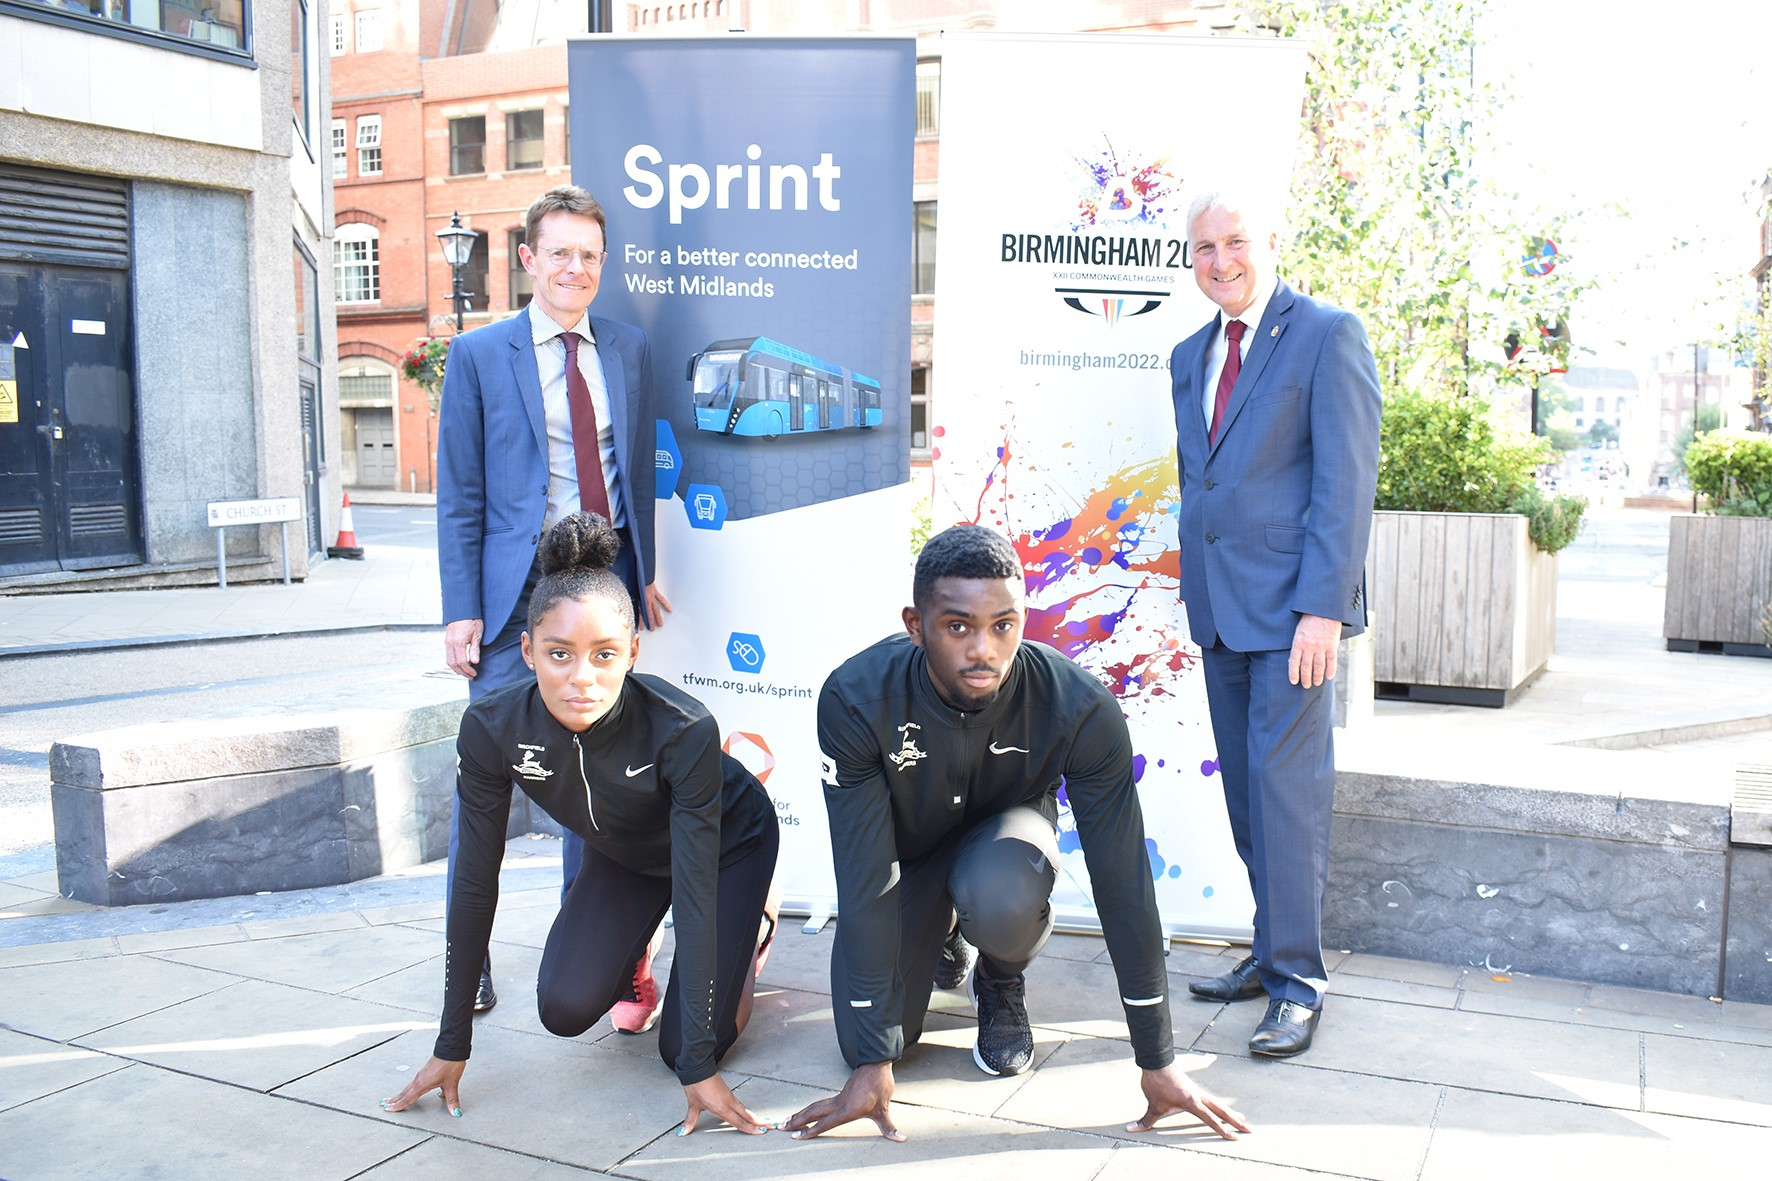 New transport system will be sprinting for success at Commonwealth Games